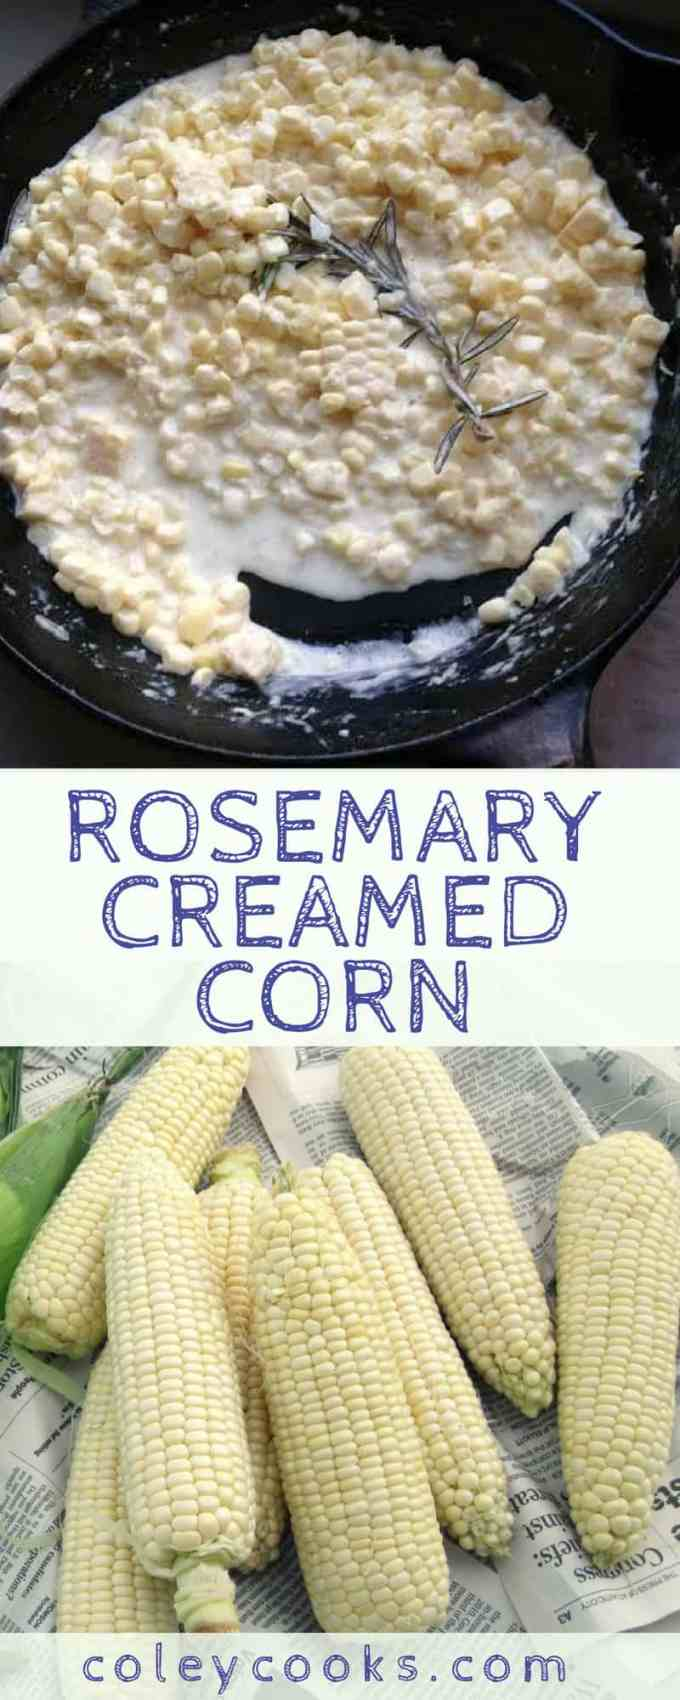 ROSEMARY CREAMED CORN   Easy creamed corn recipe! Fresh corn on the cob simmered in a simple rosemary cream sauce. A delicious summer side! #easy #summer #corn #side #recipe #southern   ColeyCooks.com